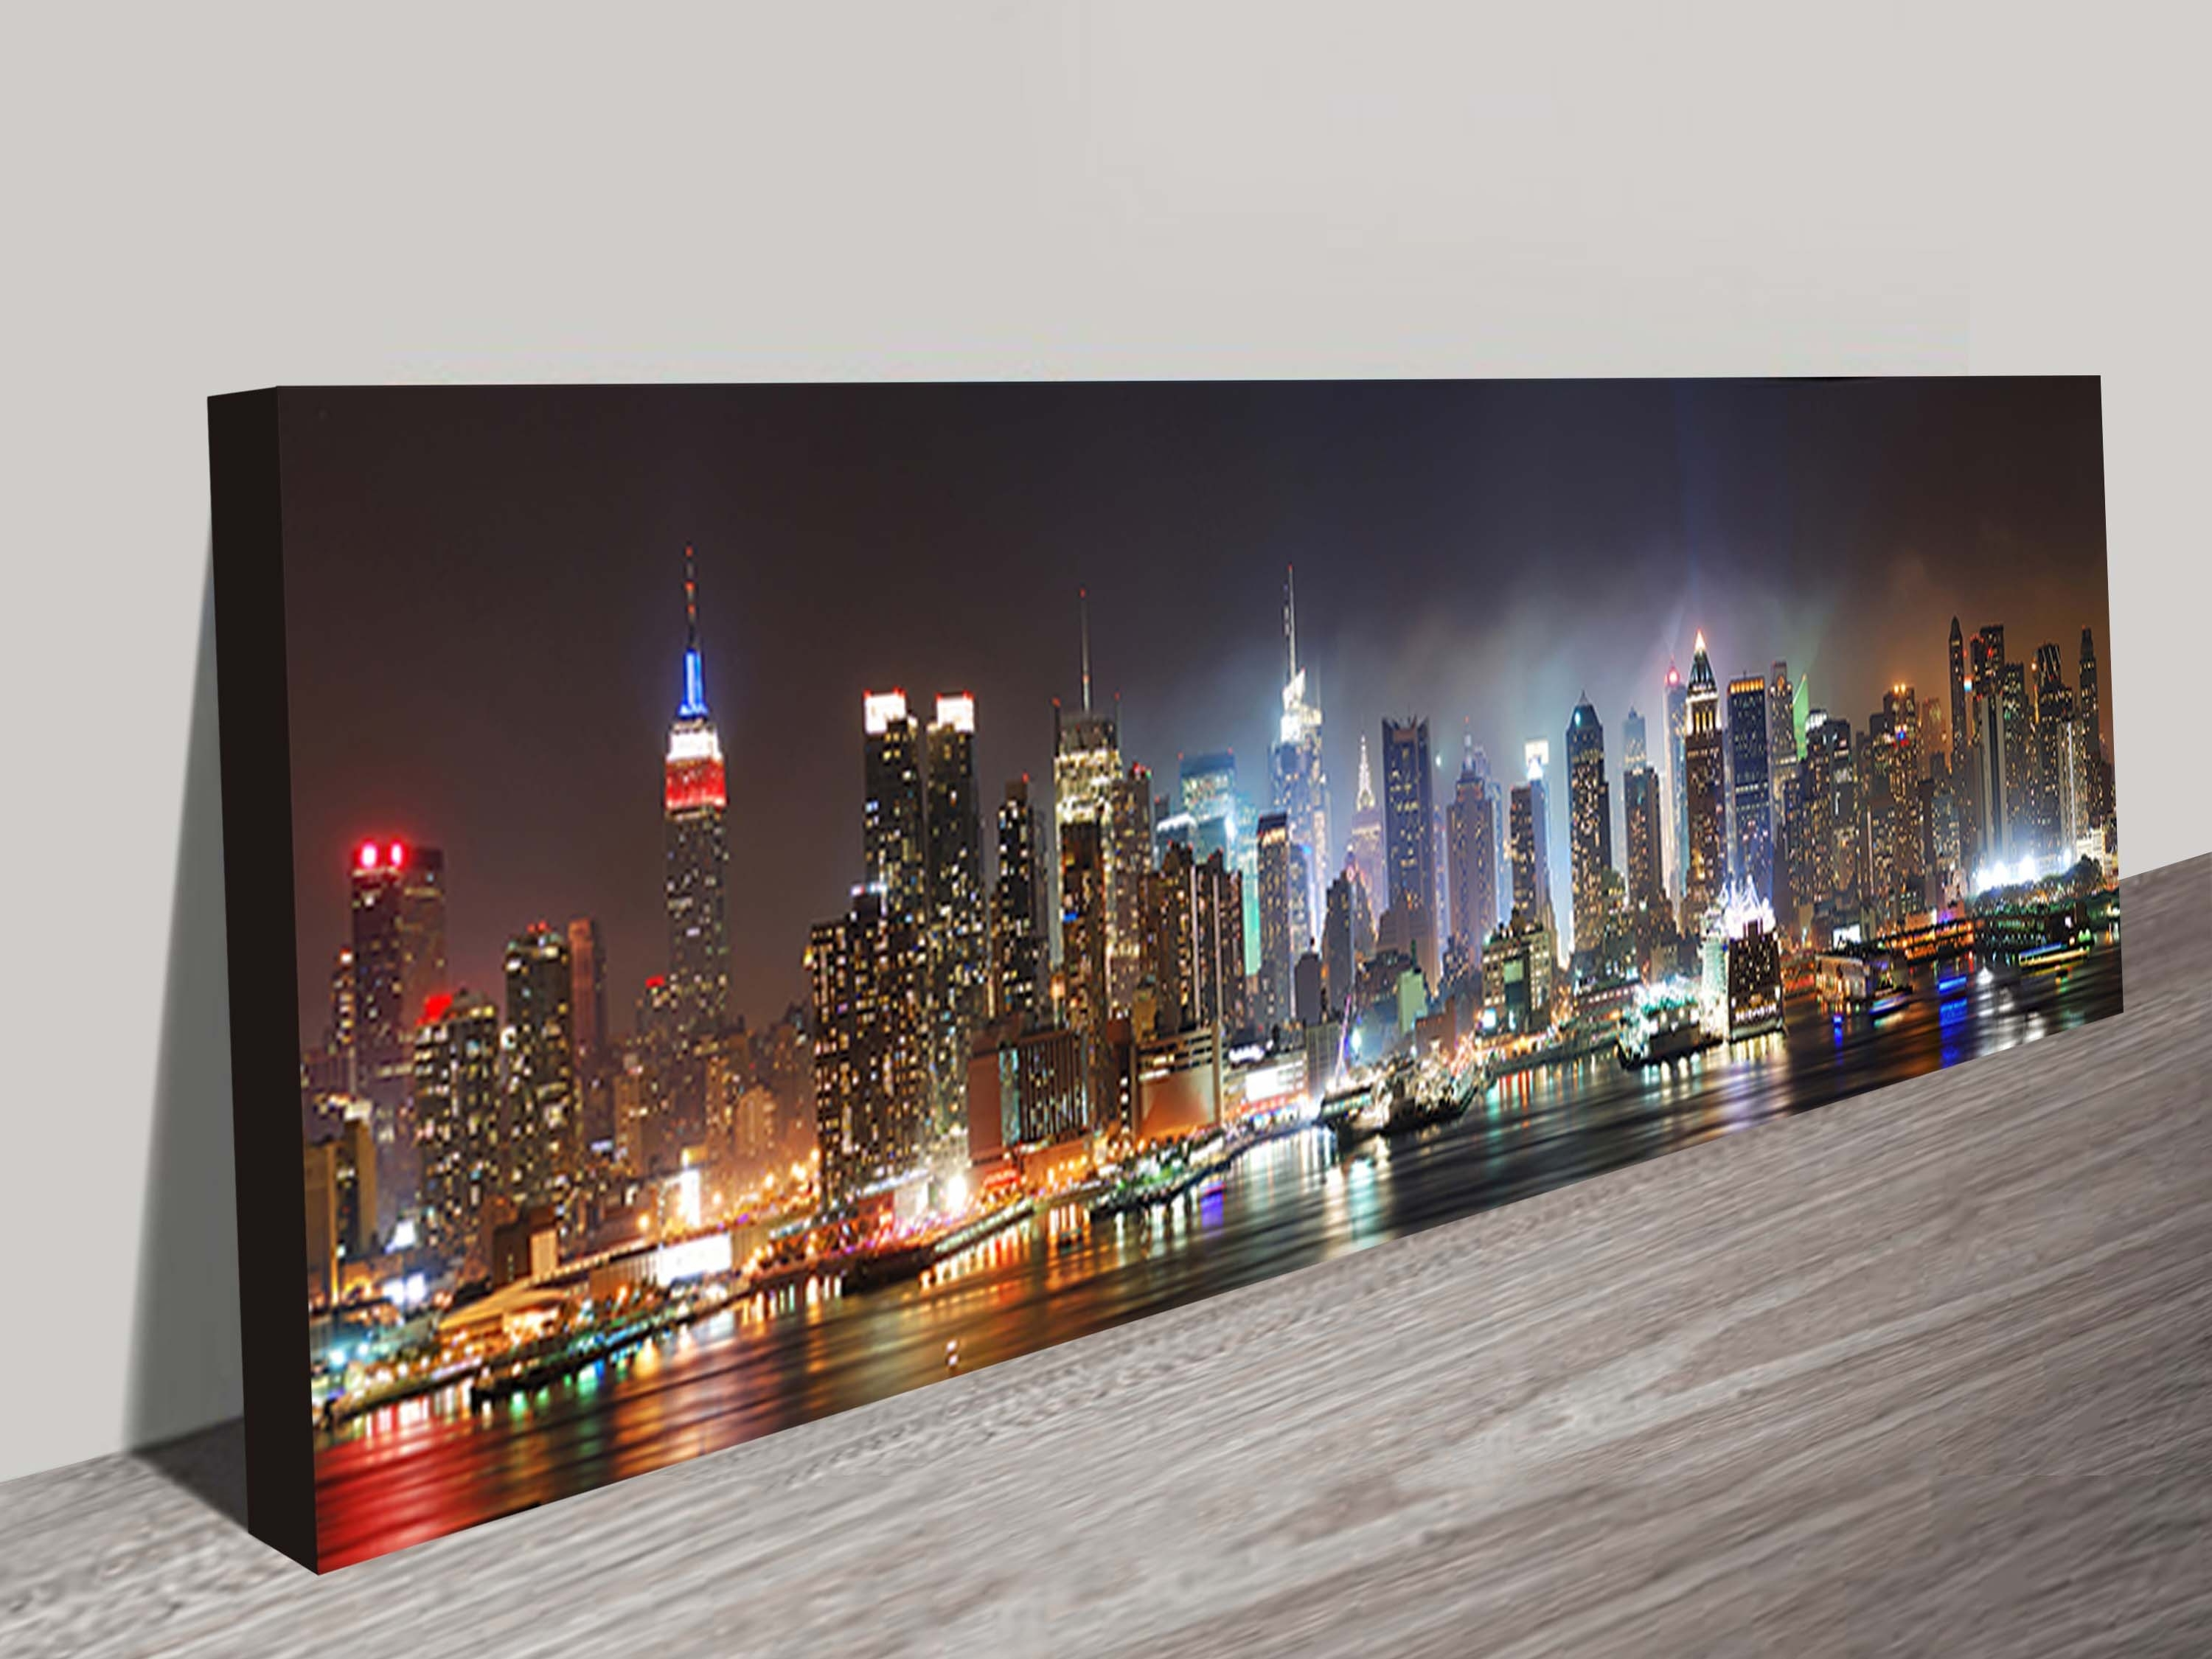 Widely Used New York Skyline Canvas Wall Print On Canvas With Regard To Canvas Wall Art Of New York City (View 8 of 15)